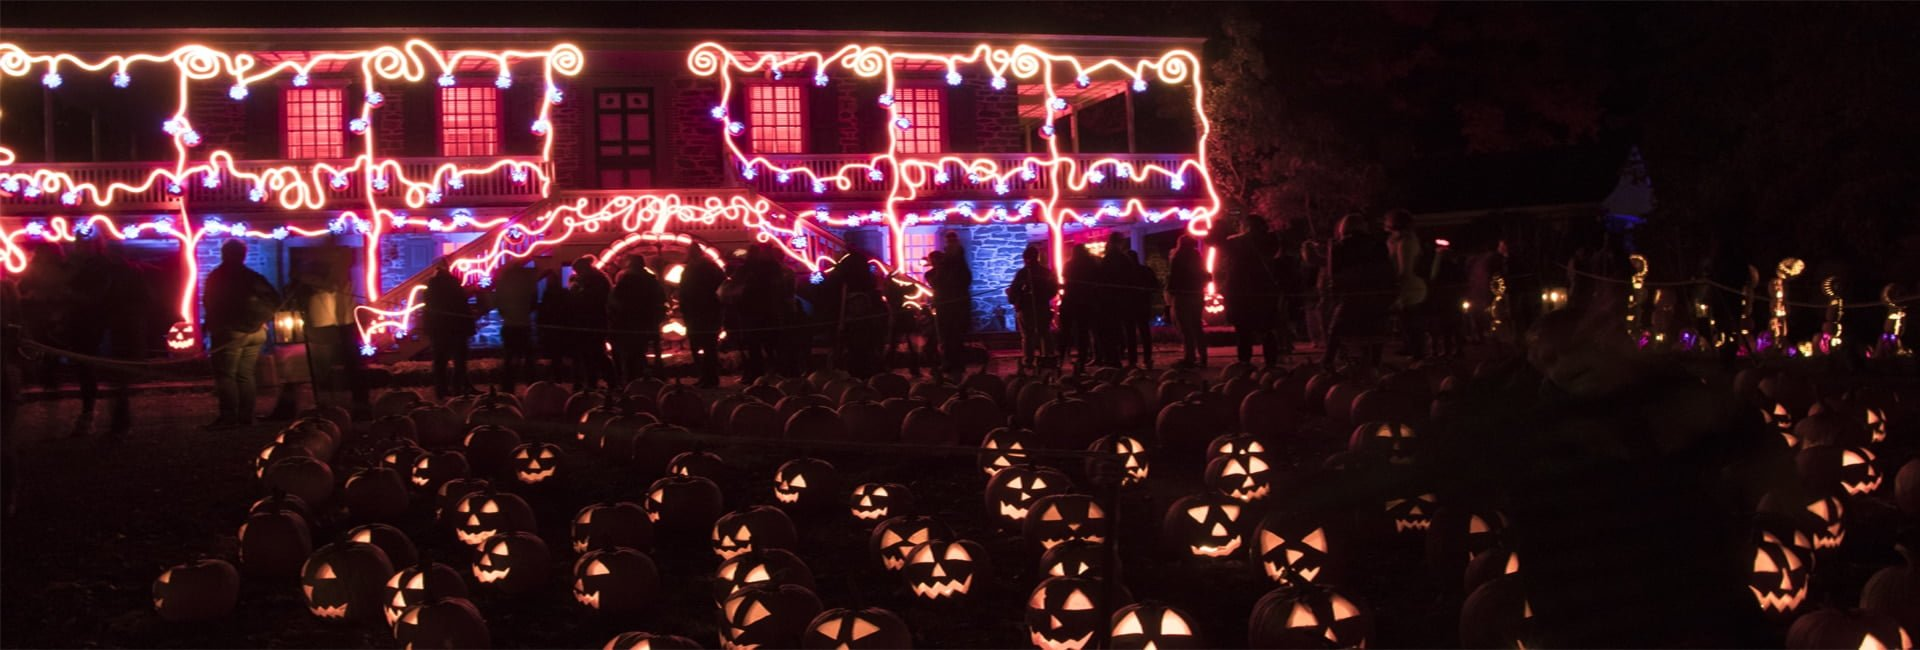 Van Cortlandt Manor House and Pumpkins Header | Photo Courtesy of Allyson Macci